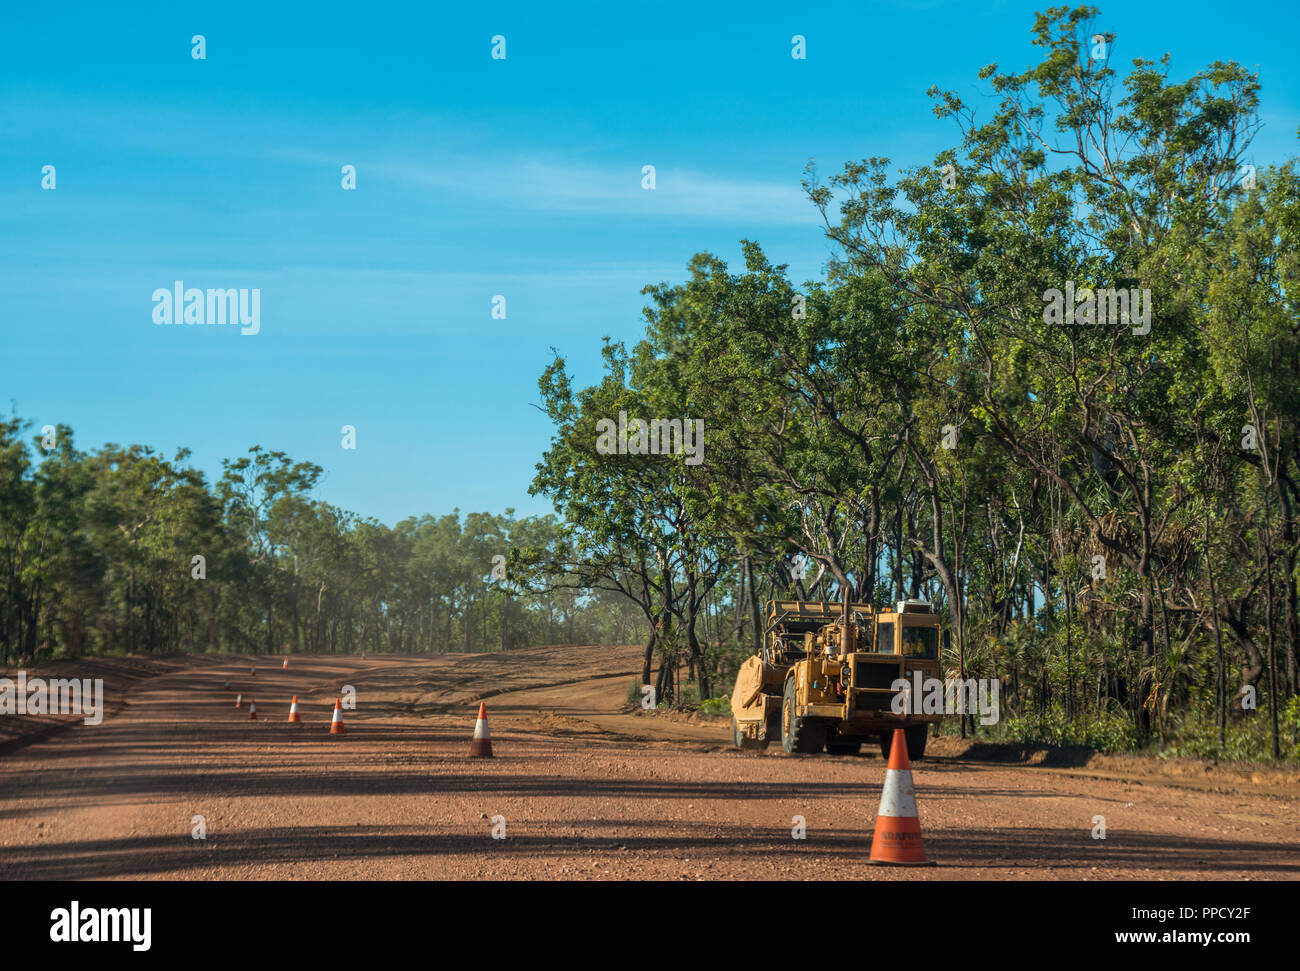 Road construction on a dust road leading through a eucalyptus forest, Litchfield, Australia, NT - Stock Image